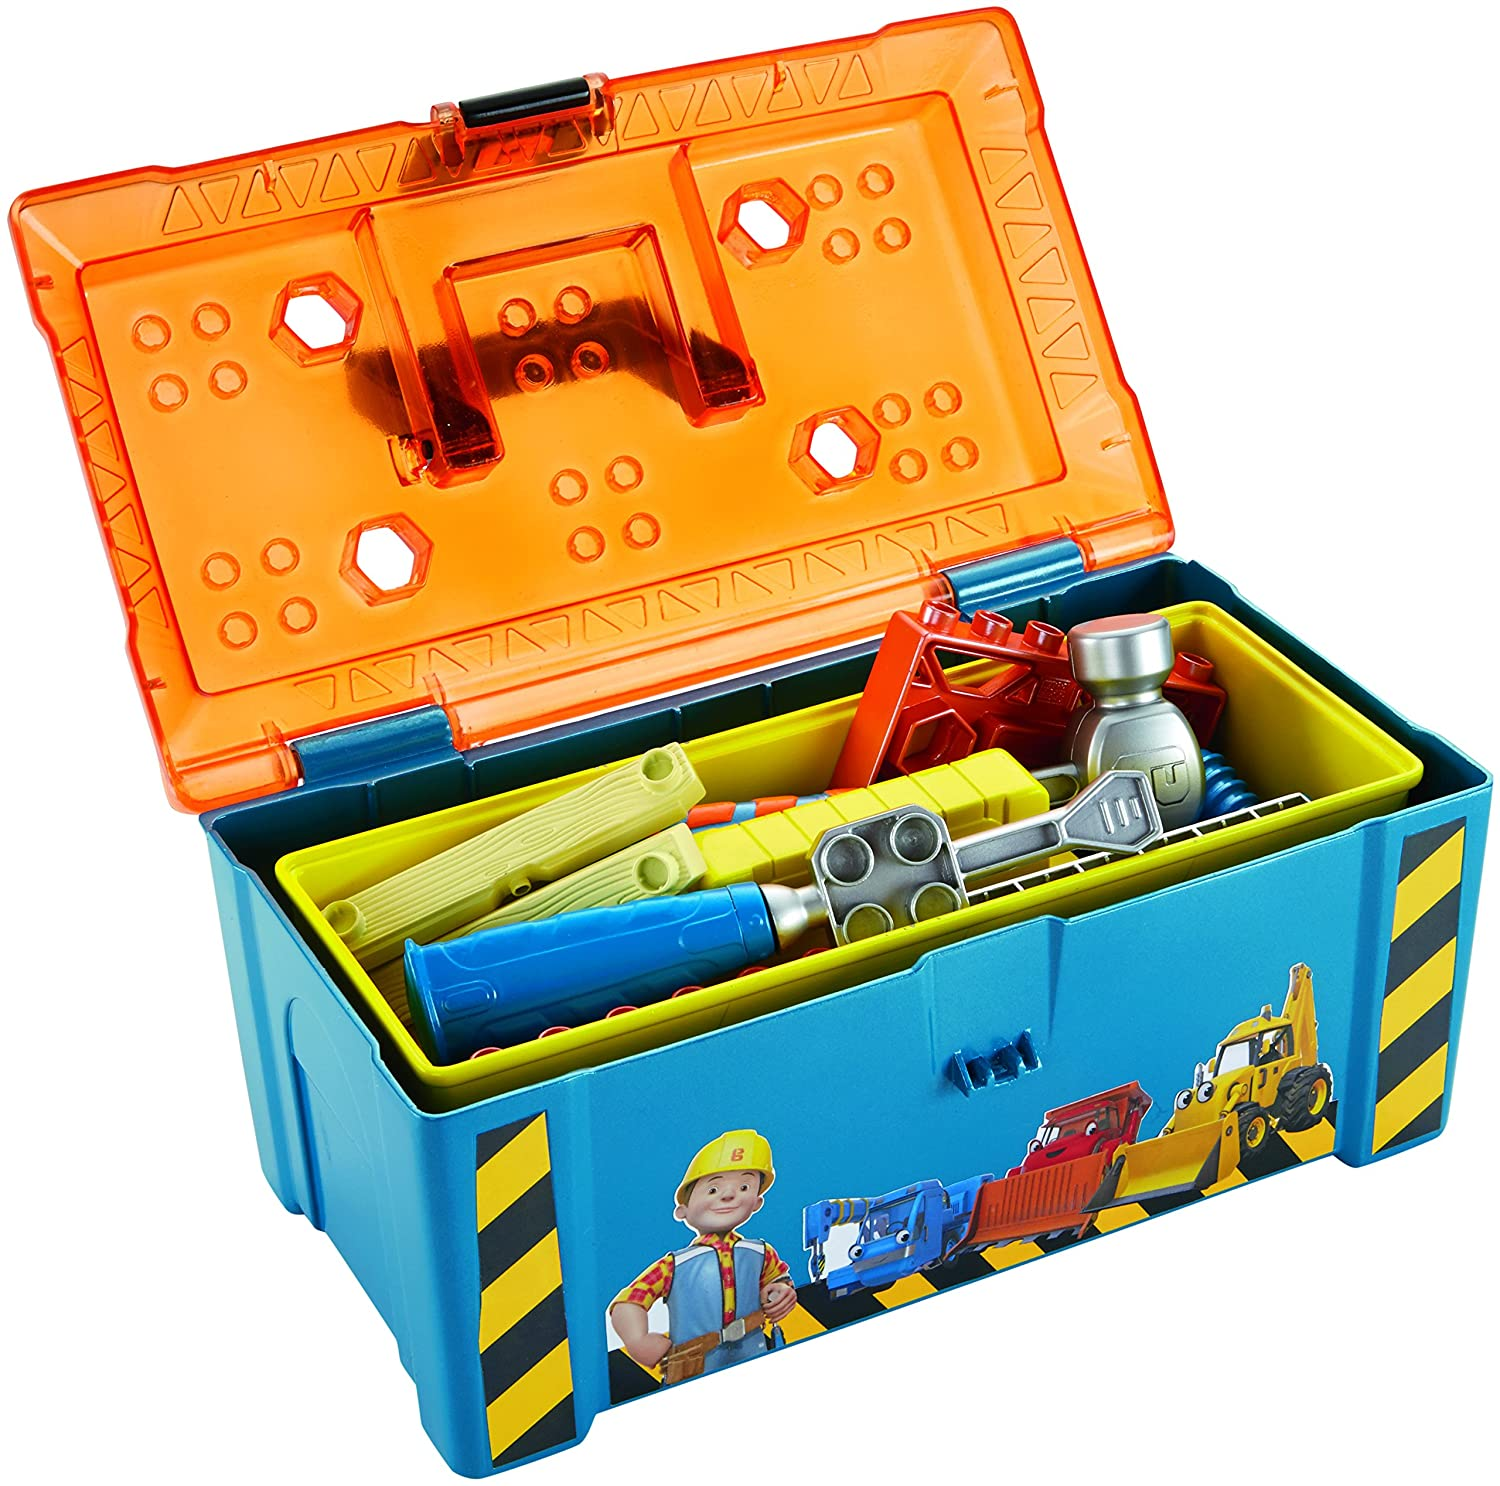 Fisher-Price Bob the Builder, Deluxe Tool Box Fisher Price DGY48